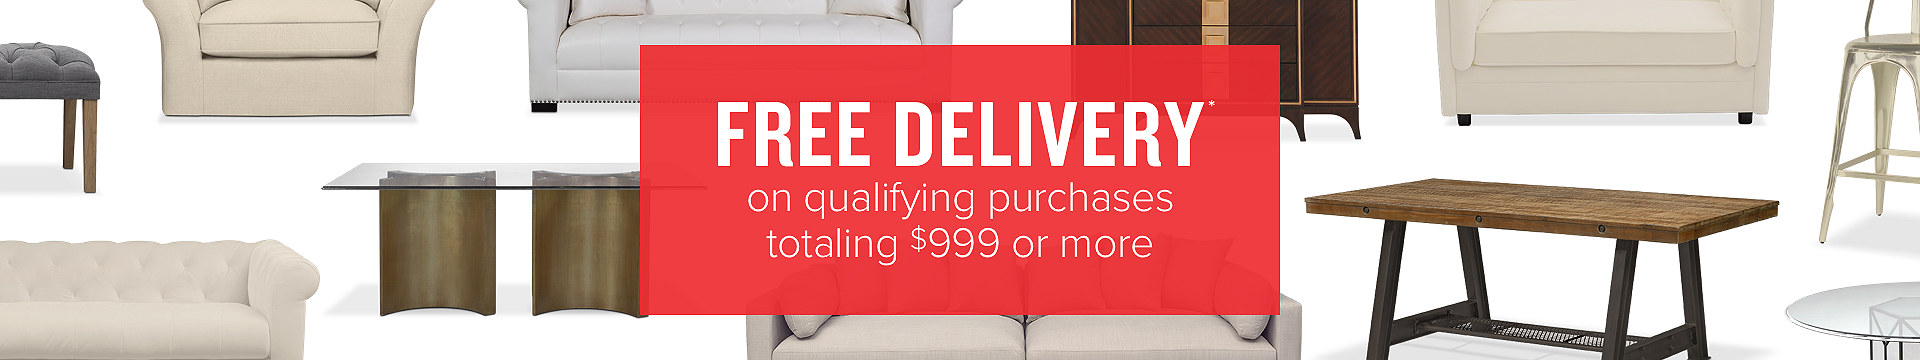 free delivery* on qualifying purchases totaling $999 or more.